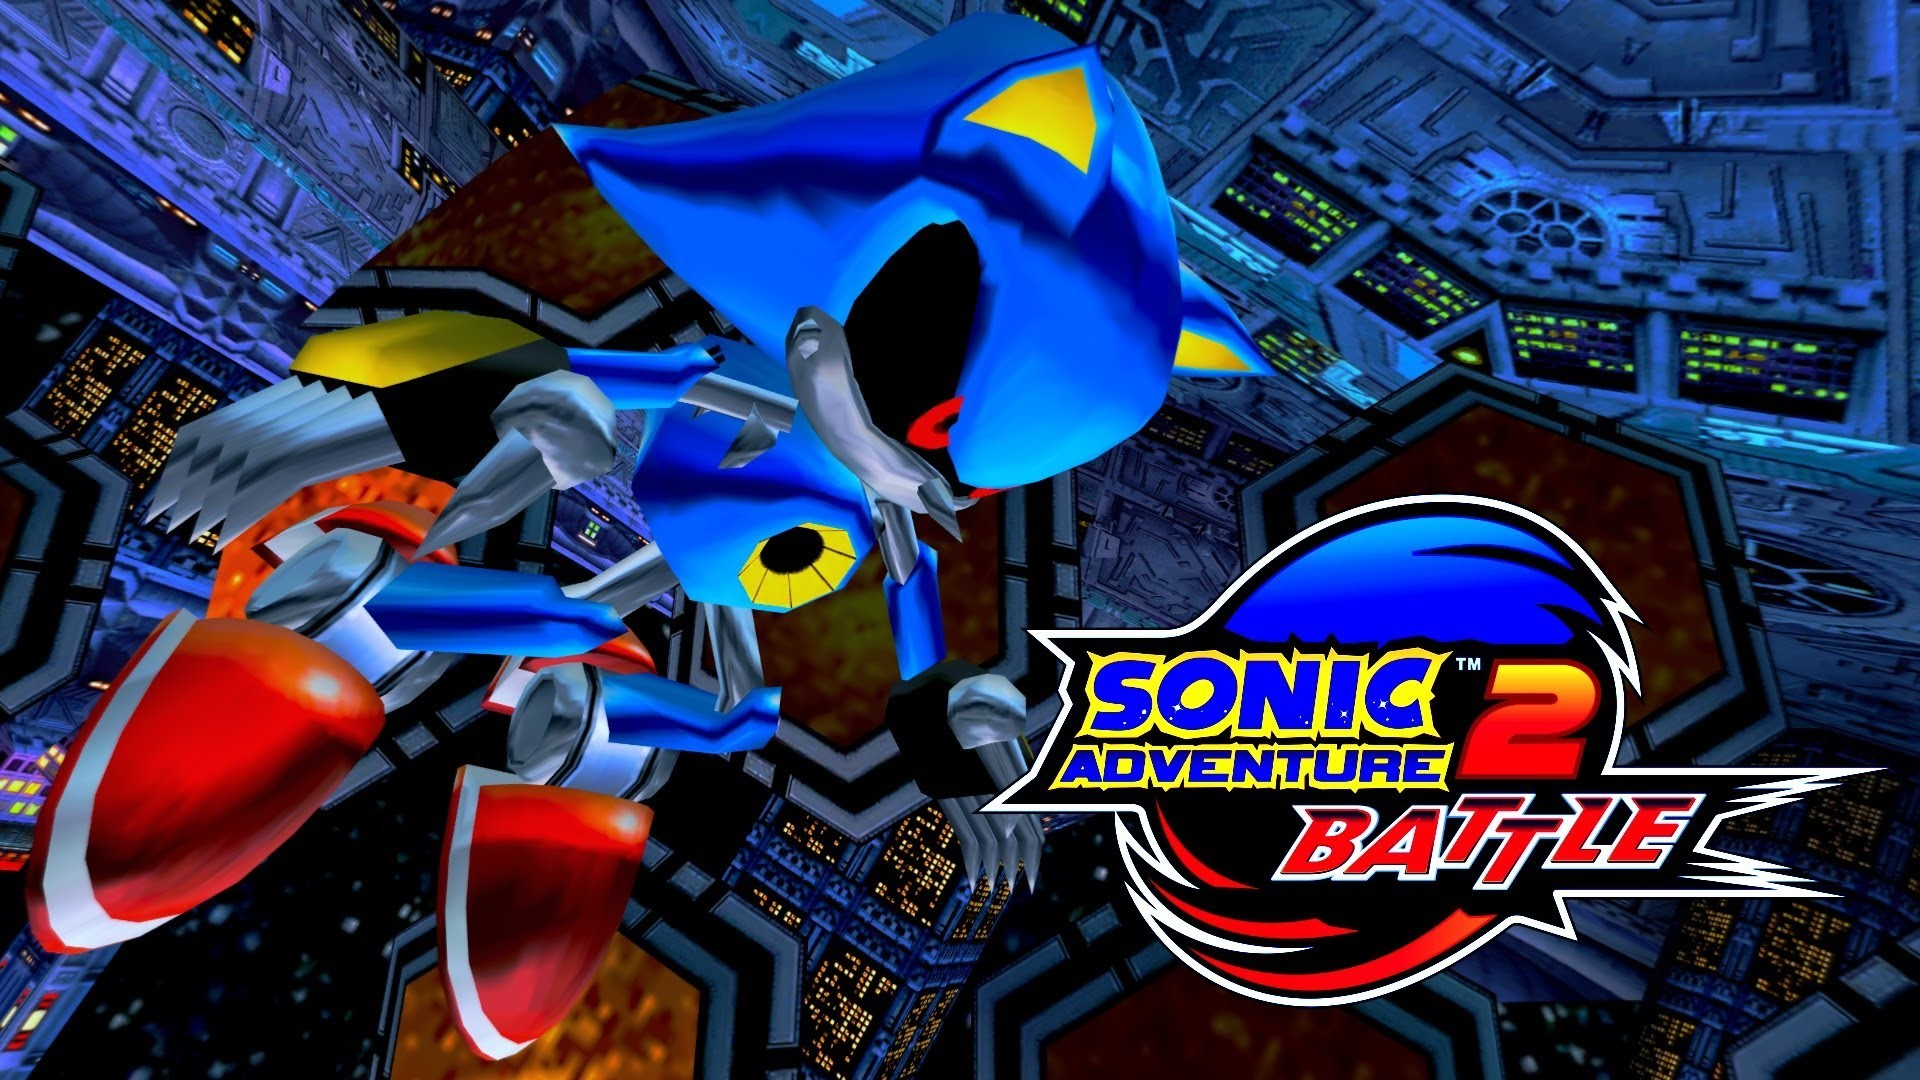 1920x1080 Sonic Adventure 2: Battle - Final Chase - Metal Sonic [REAL Full HD,  Widescreen] - YouTube